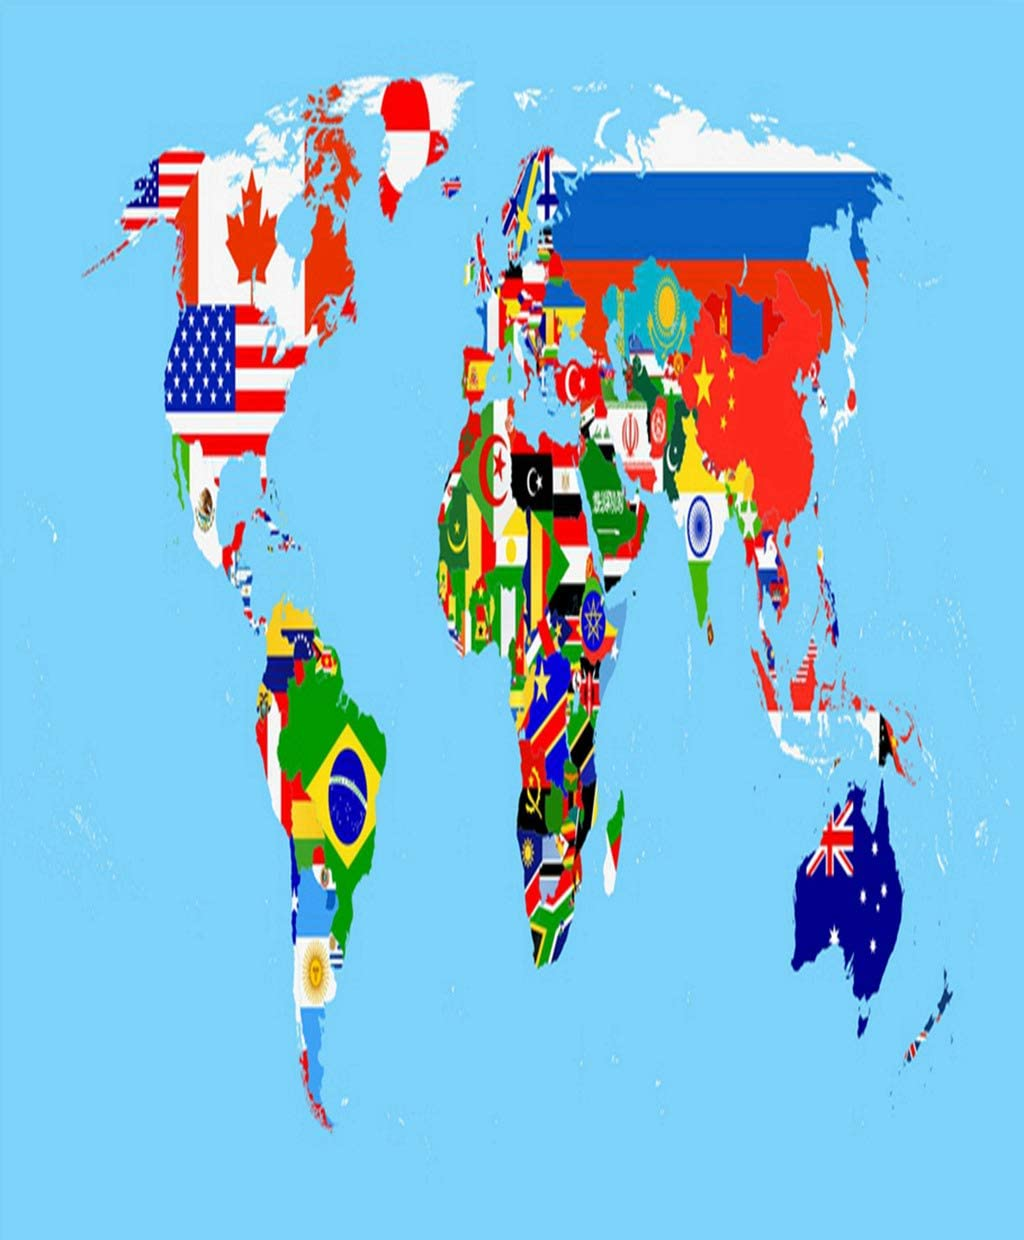 Zomike Poster Wall Art World Flag Map Blue All are Separated in Layers Prints Artwork Unframed Modern Home Decor for Living Dining Dorms Office 18 X 24 Inches